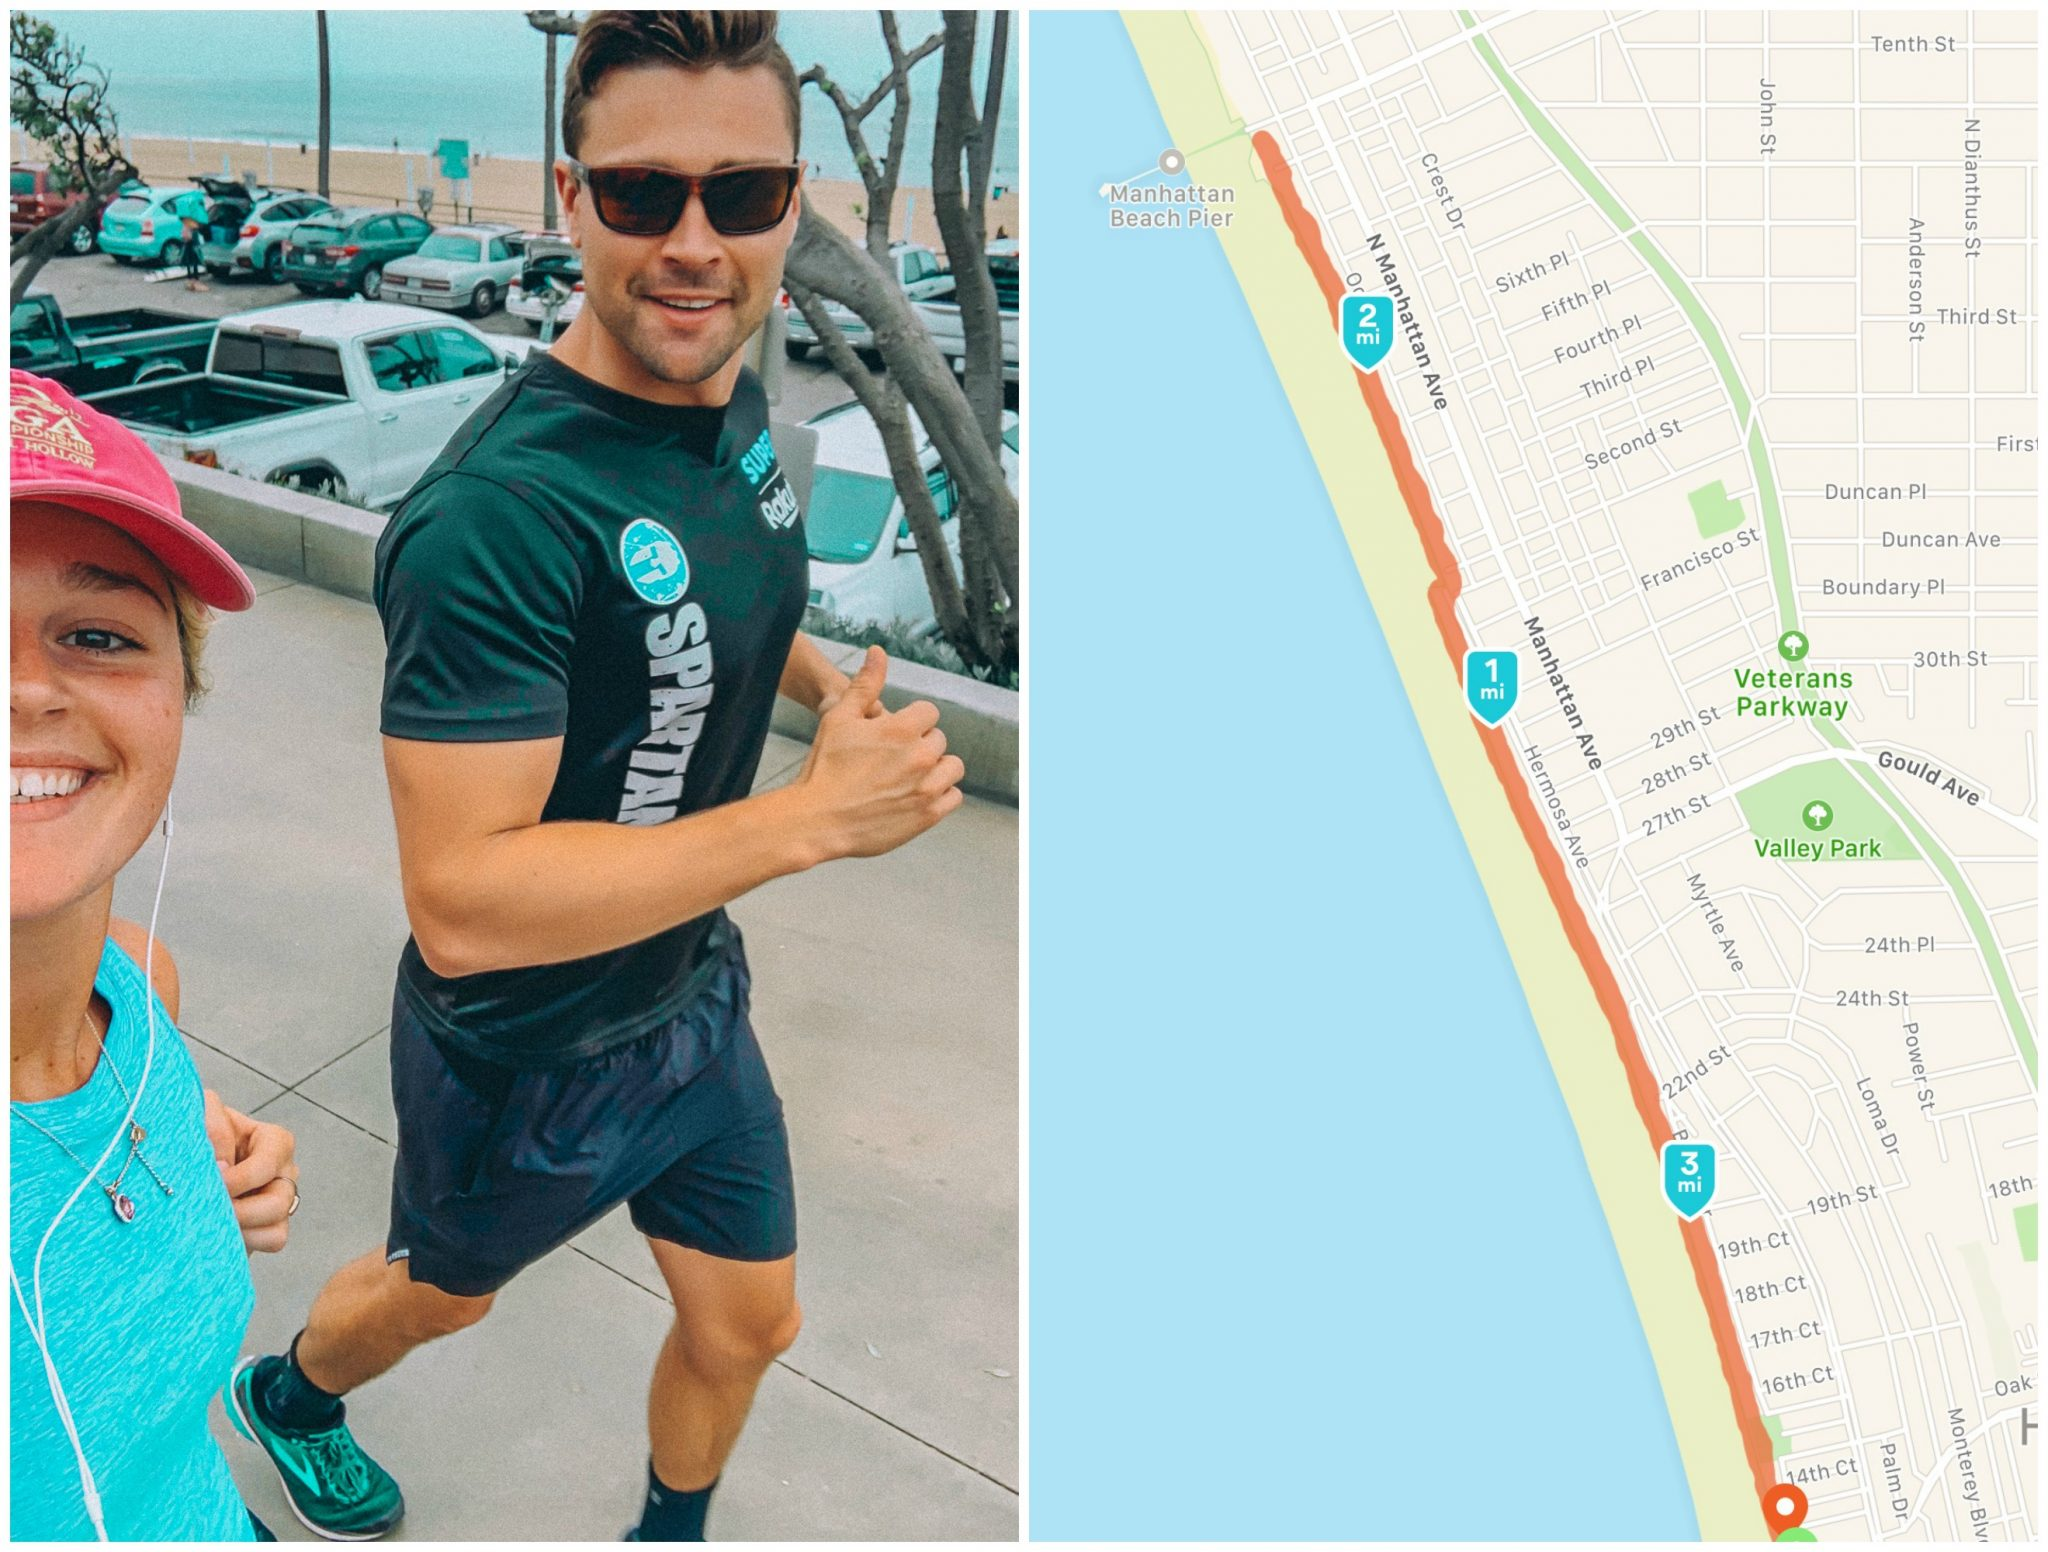 hermosa beach run, four miles with my brother, running four miles, run, exercise, recap post, lifestyle, beach, sand, beach run, new balance, asics, recap posts, blogger, travel, family